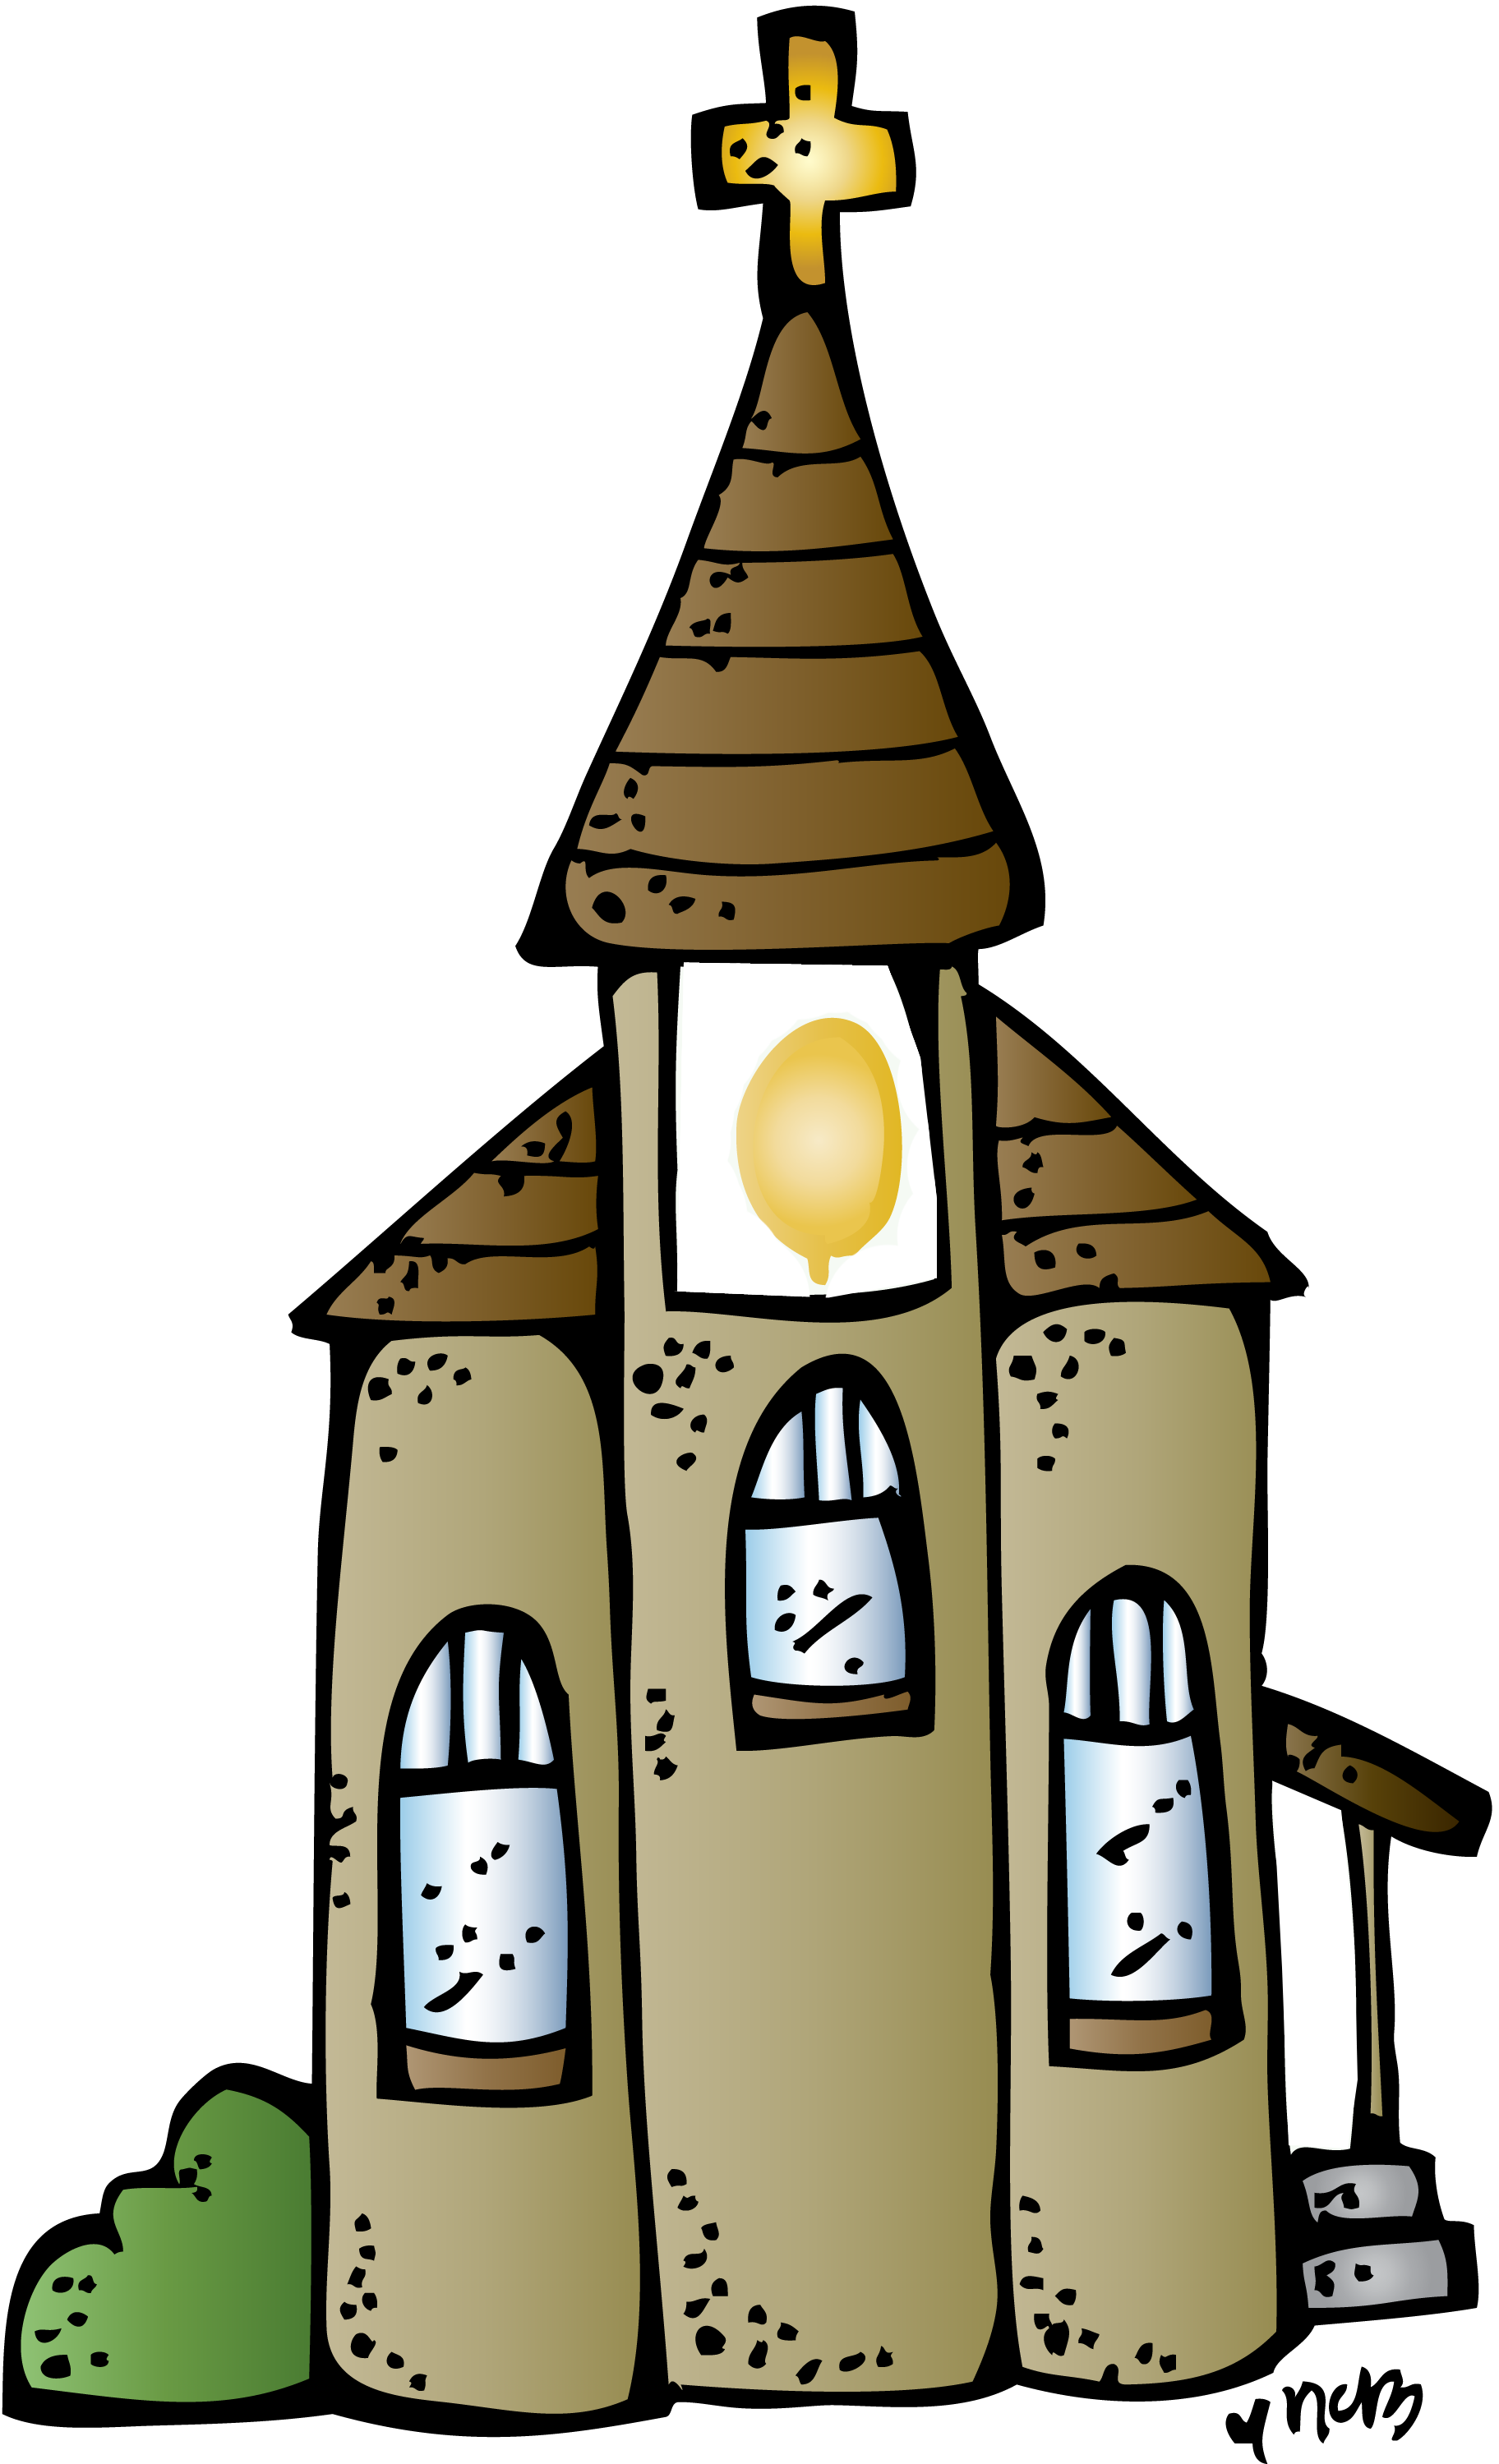 Church pr c melonheadz. Ten commandments clipart mount sinai